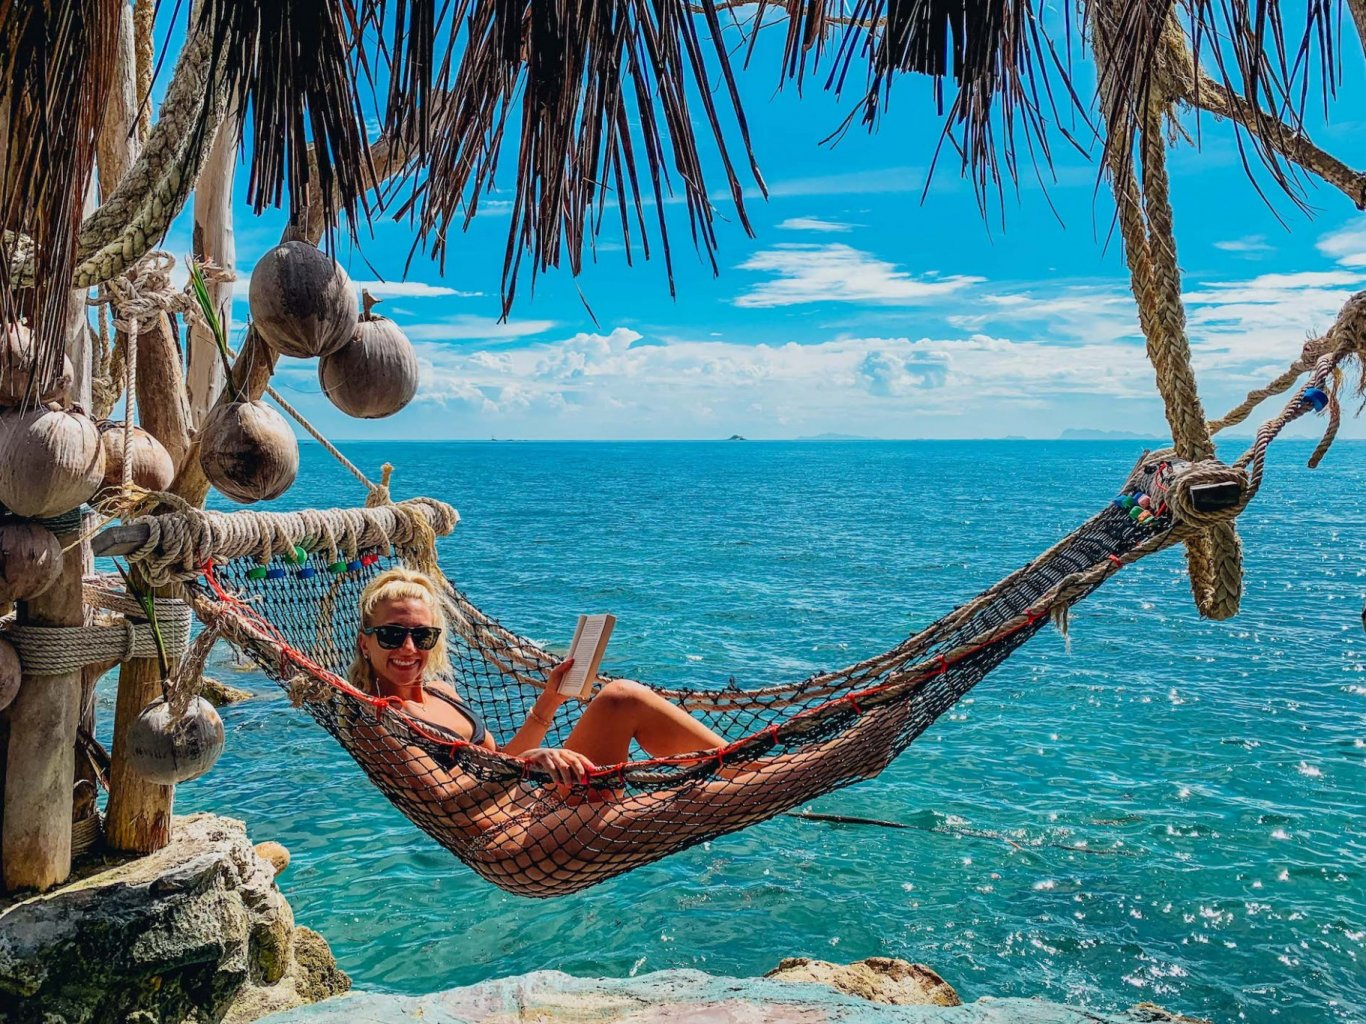 A picturesque photo of a girl on a hammock by crystal clear blue waters in Koh Phangan Thailand